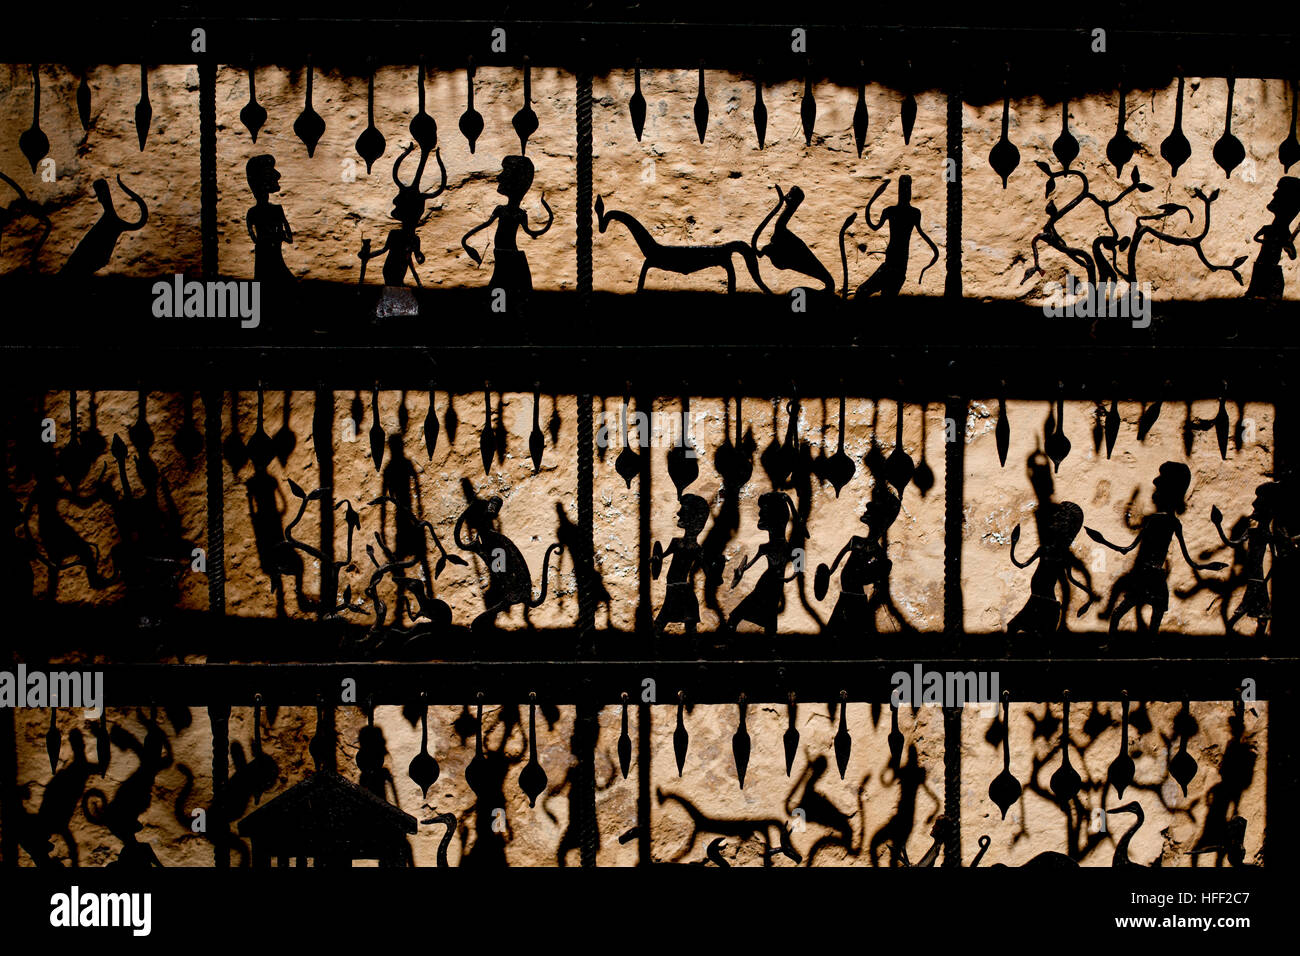 Light and shadow play on a Bastar tribal art piece made of wrought iron - Stock Image